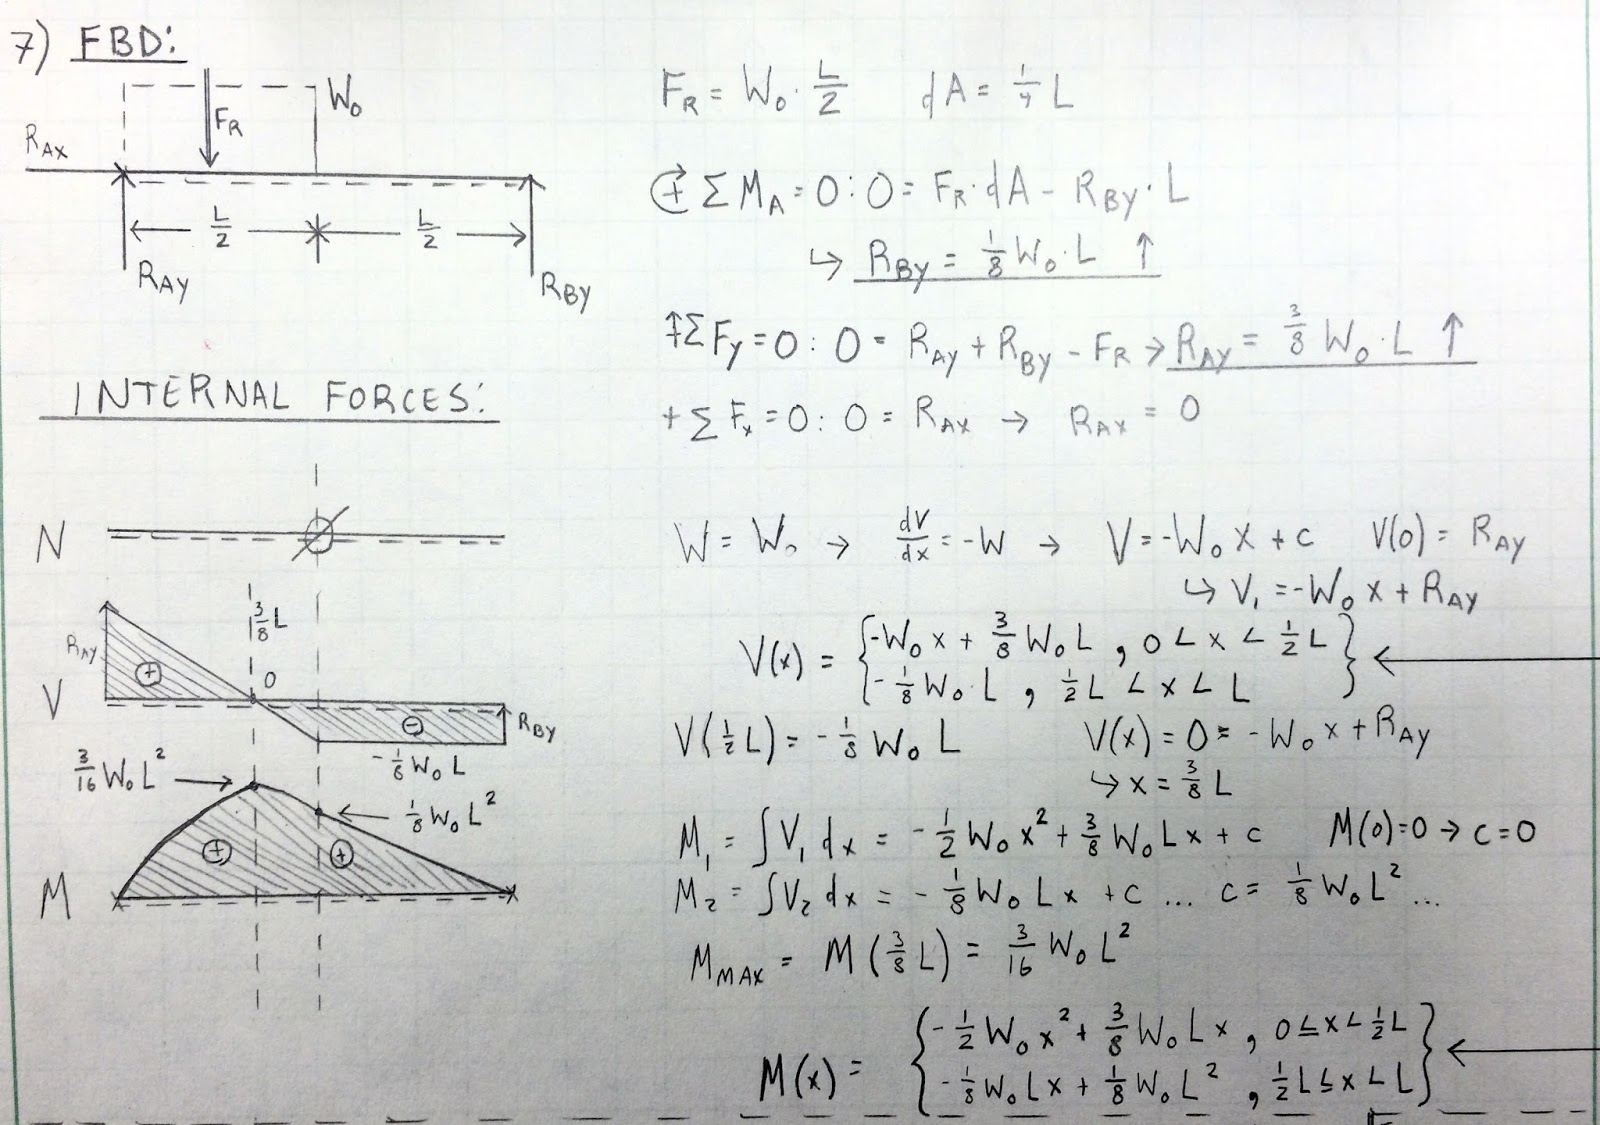 Engineering Mechanics Statics Problem Solutions And Walkthroughs 2015 Free Body Diagram The Shear Forcediagram Moment 5 7 Question Define Functions For Force Bending